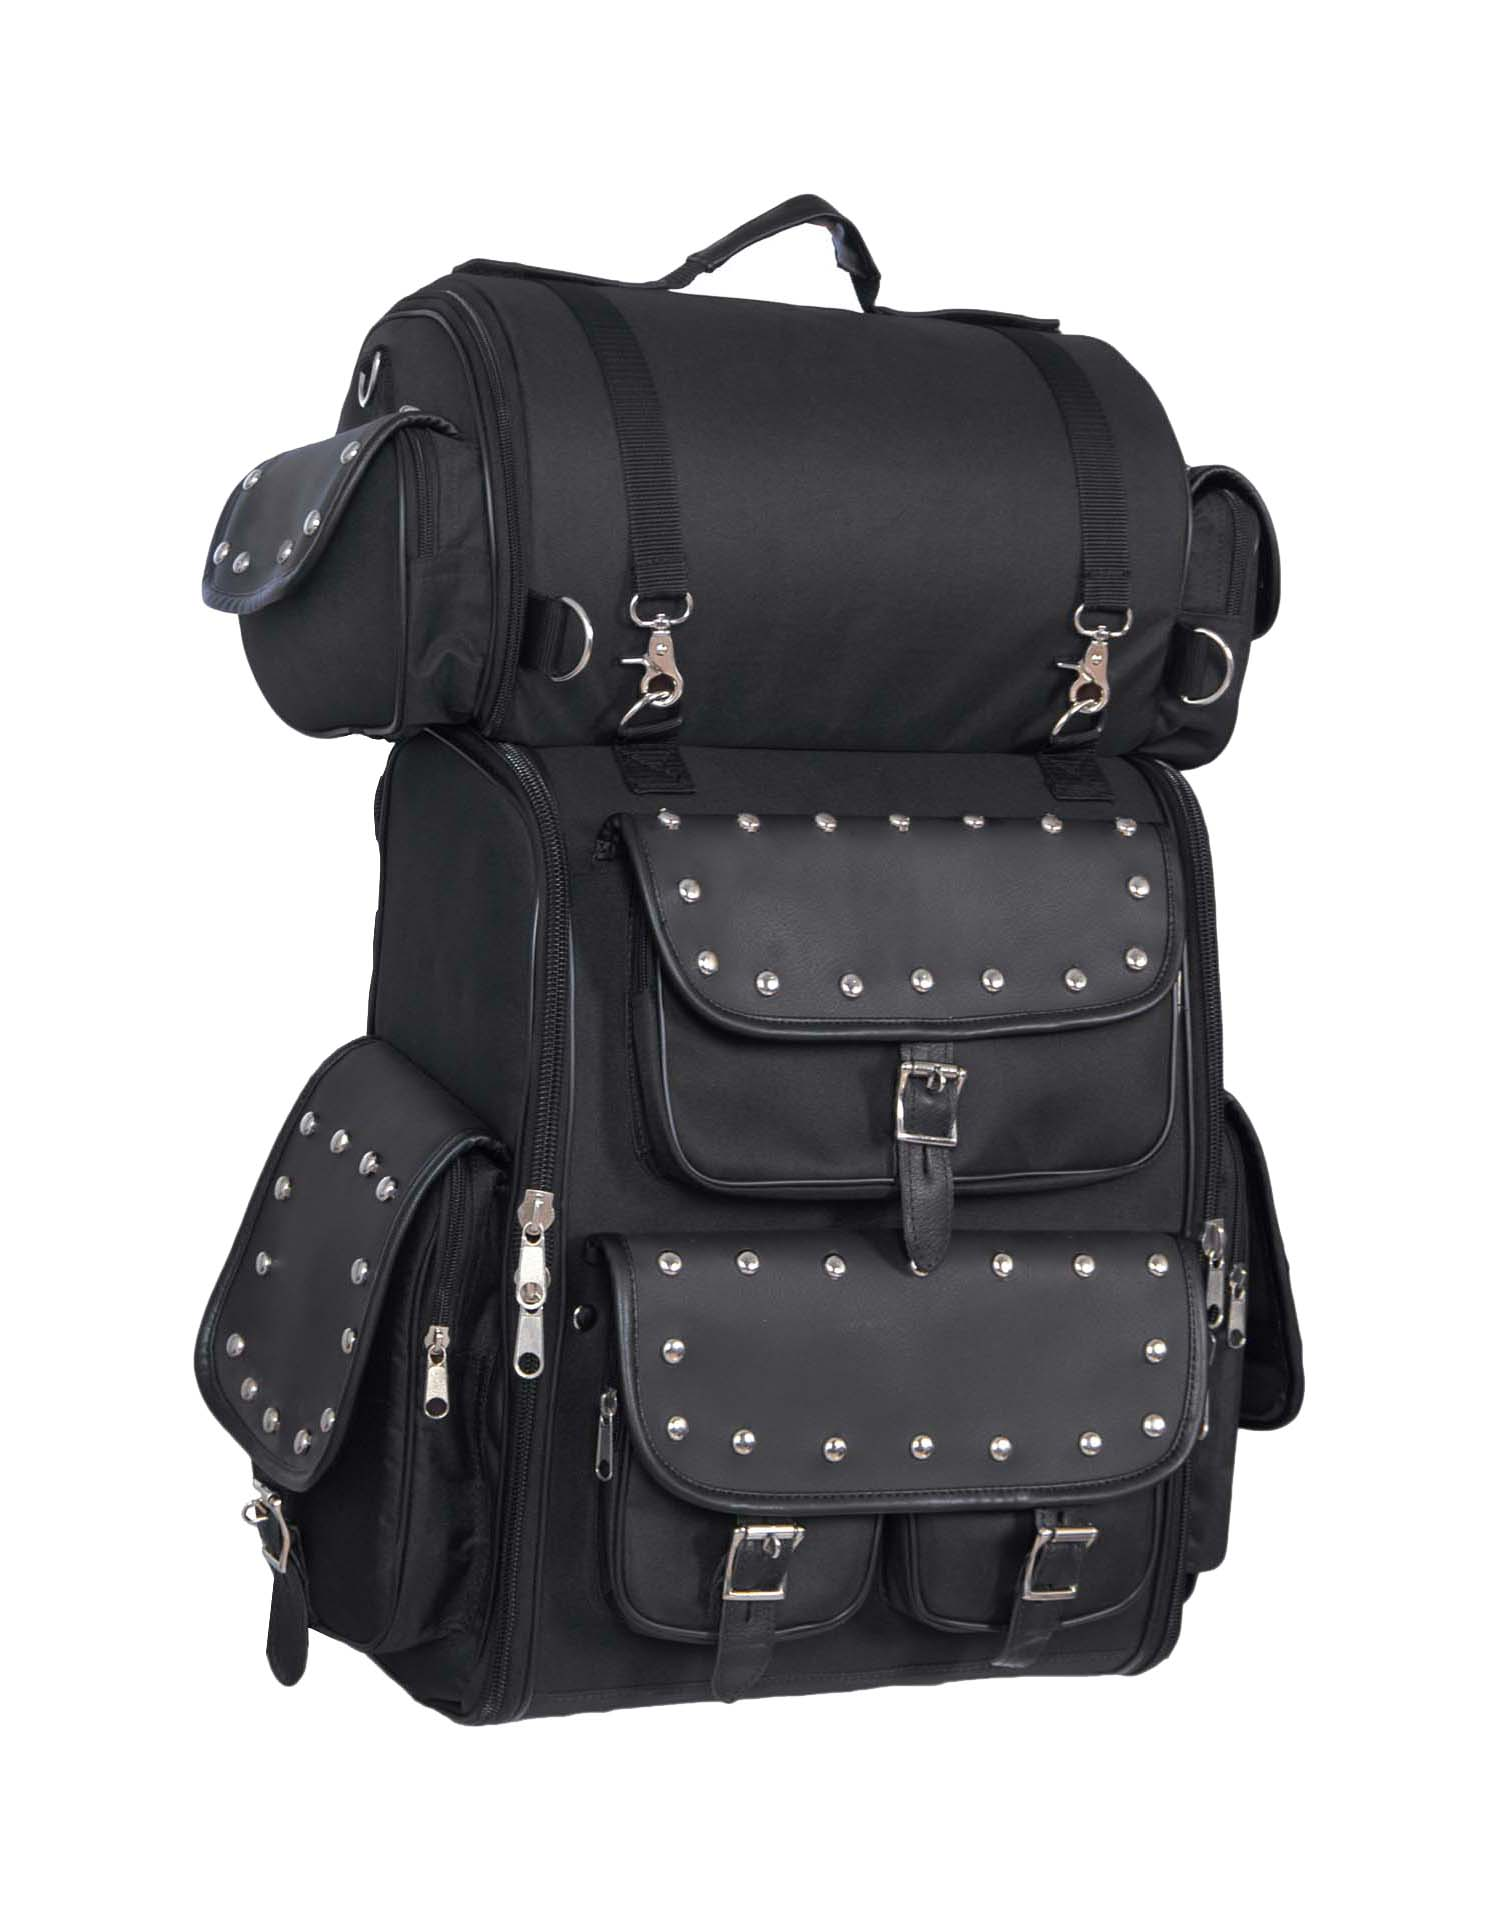 Black Nylon Touring Shelf Bag w/ Studs